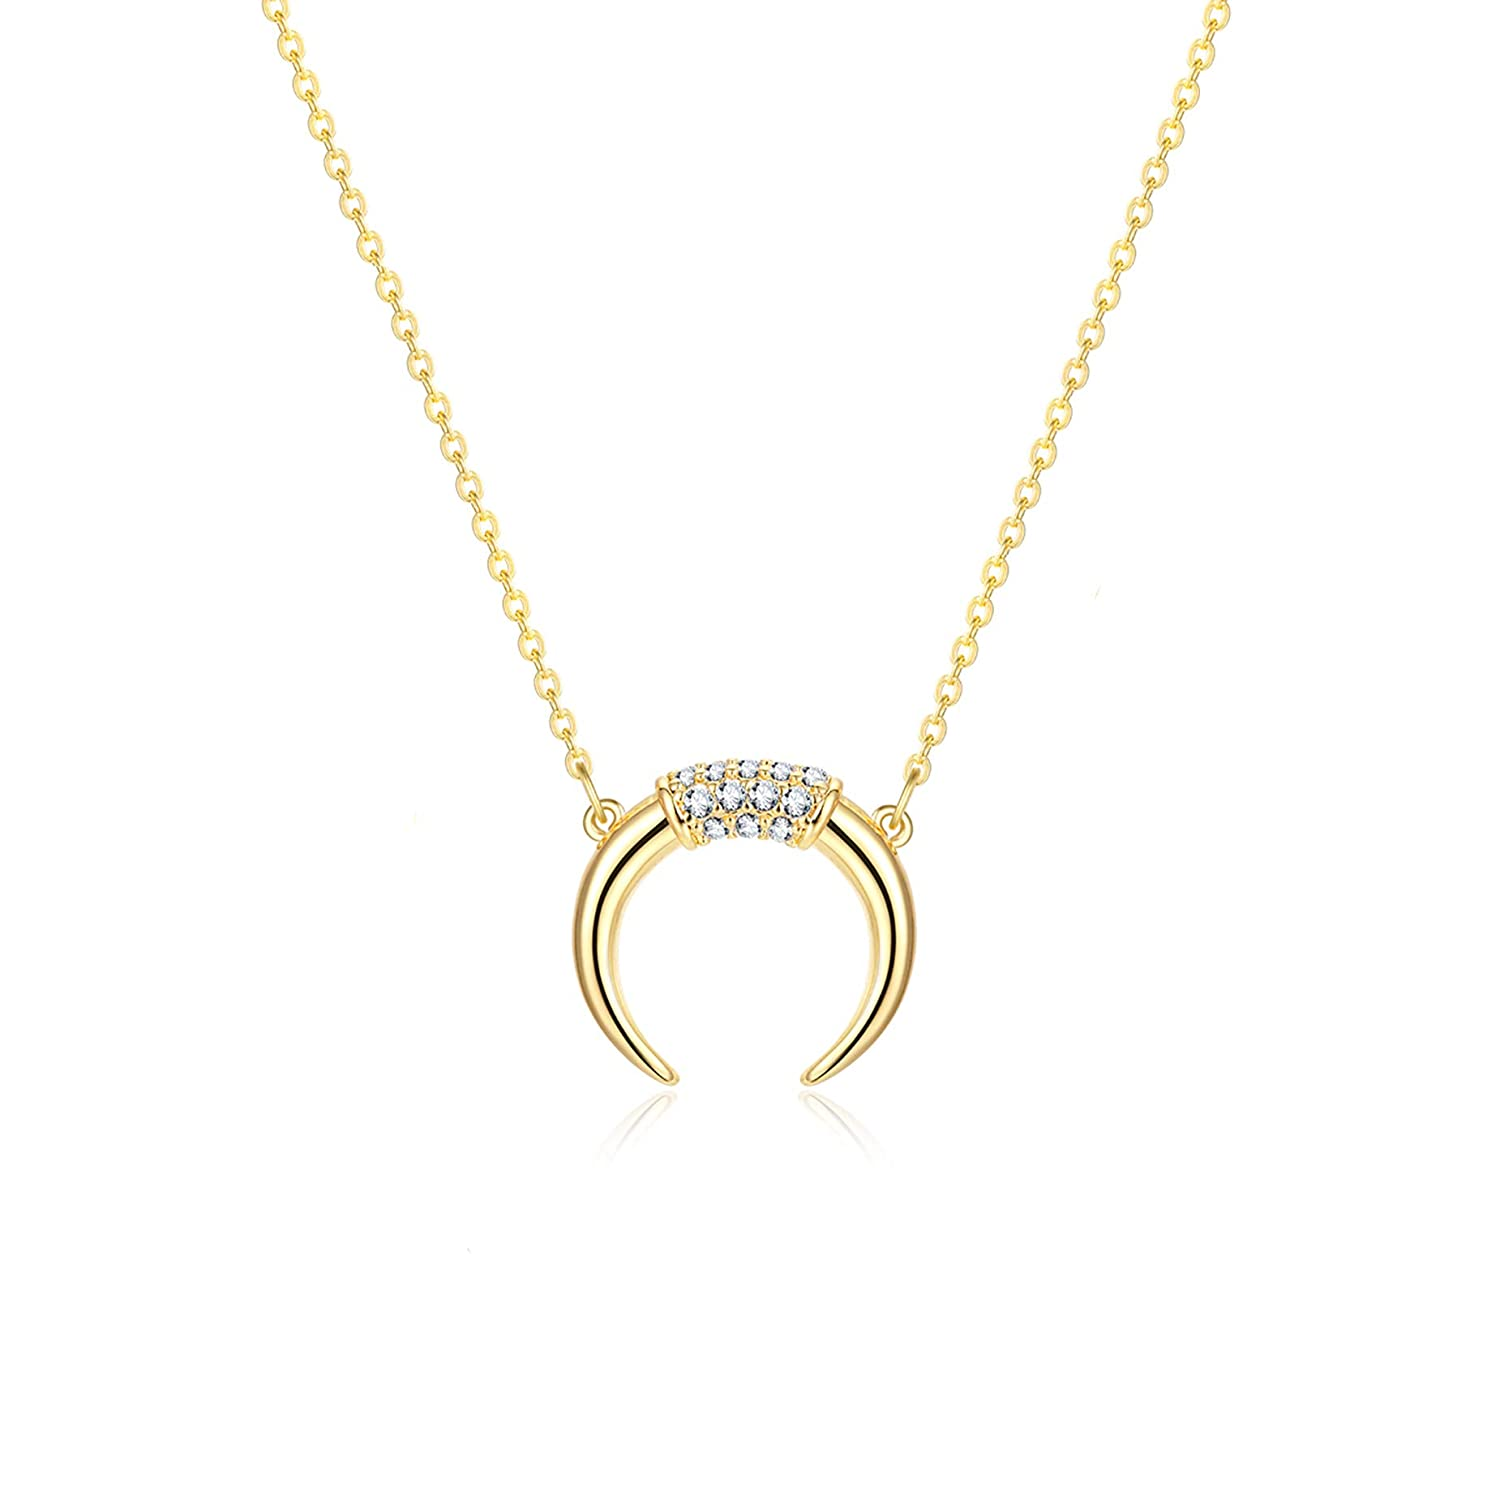 4c21ca5377d6aa Amazon.com: Fettero Dainty Gold CZ Crescent Moon Necklace, Crescent  Necklaces for Women, (CZ Crescent Moon): Jewelry